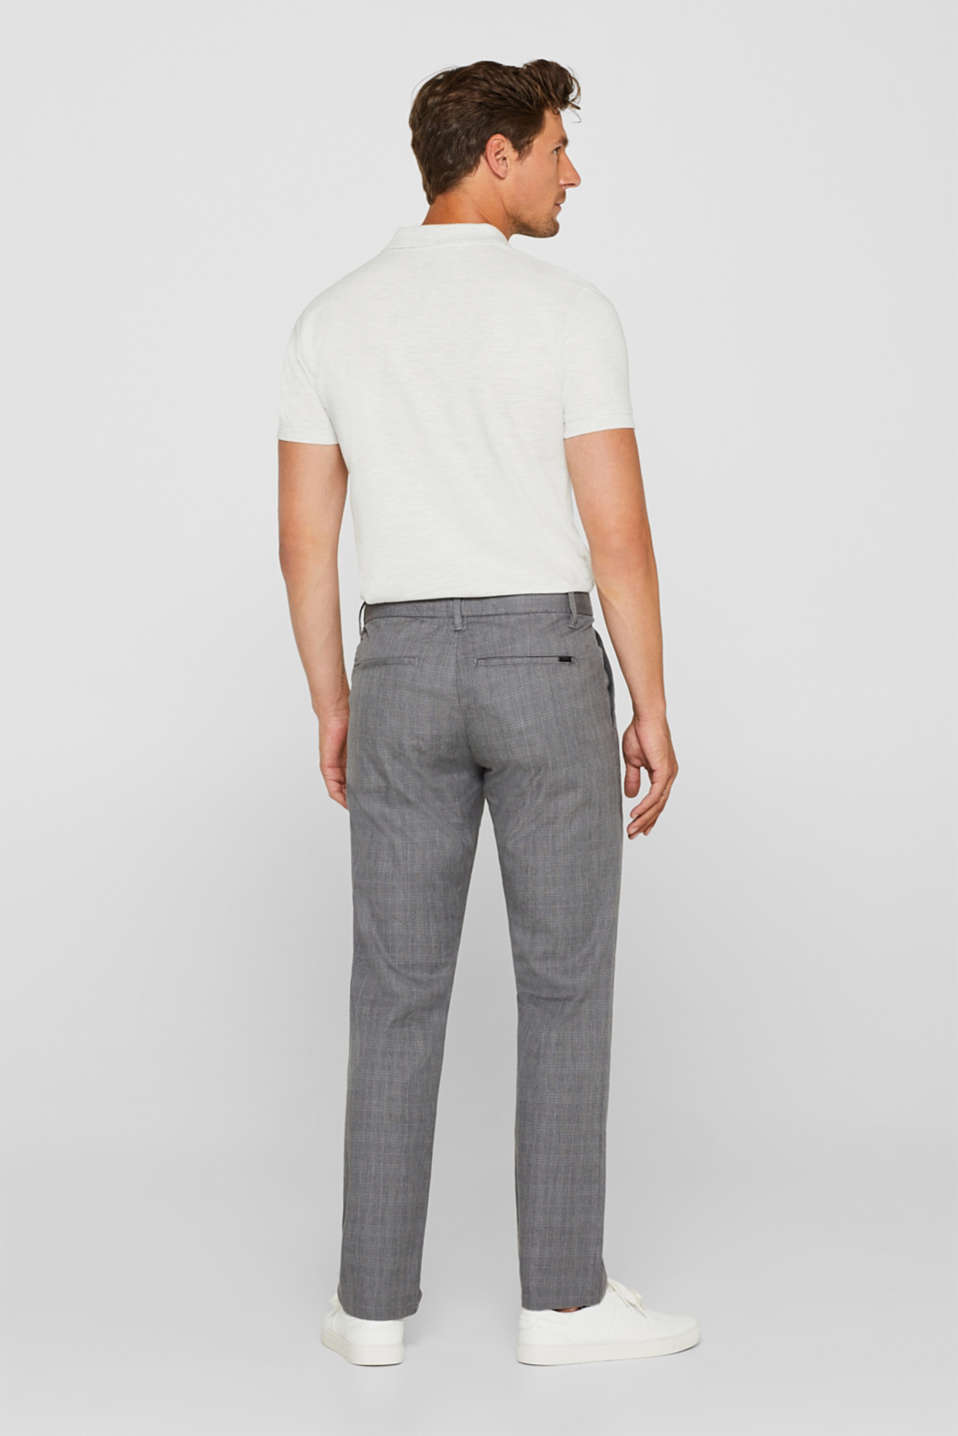 Trousers with a check pattern, made of stretch cotton, GREY, detail image number 3